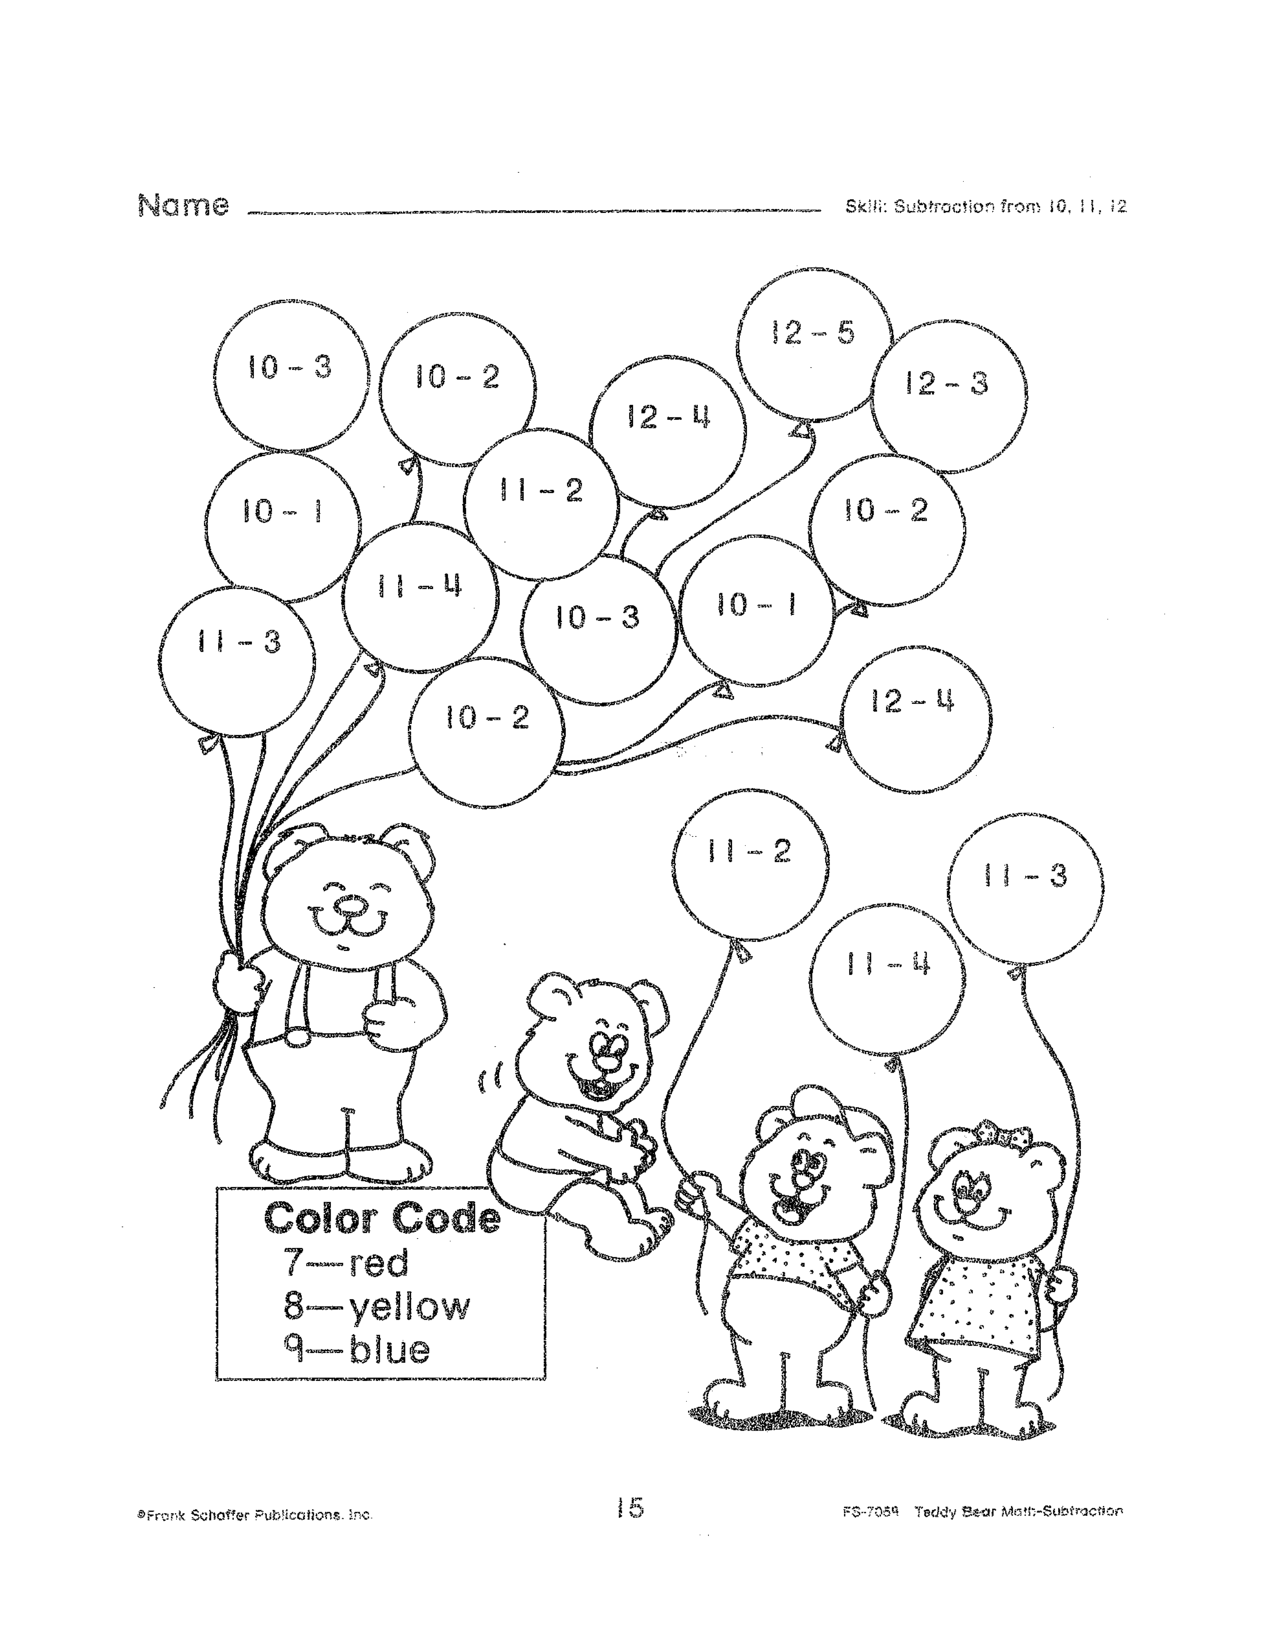 Printables Printable Math Worksheets For Grade 2 printable grade 2 math worksheets scalien 1000 images about on pinterest sheets multiplication worksheets